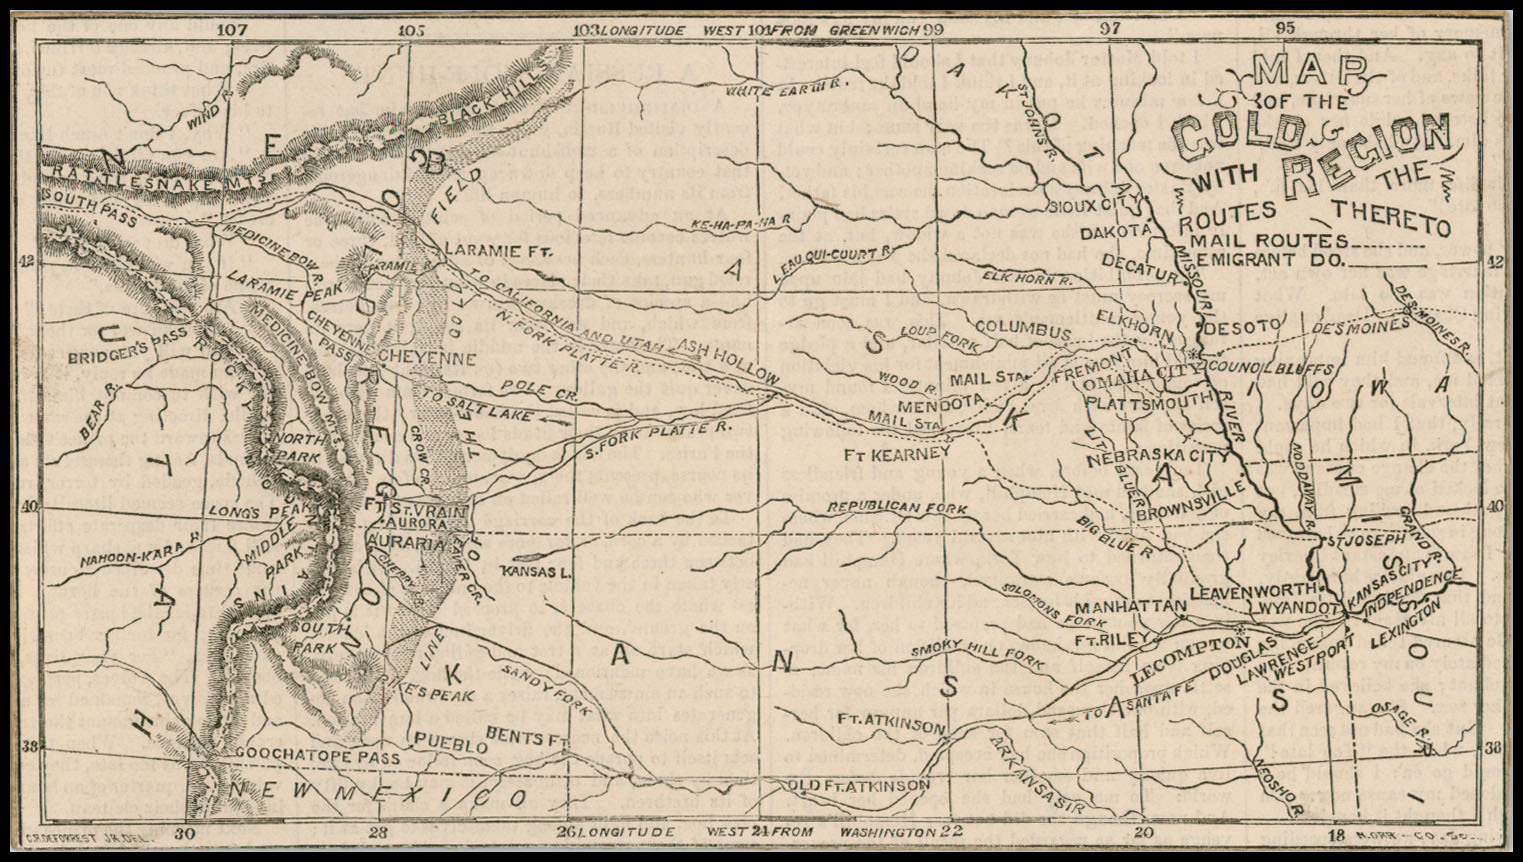 Map of the Gold Region with the Routes Thereto [Colorado ... Gold Rush Map on z nation map, underground railroad map, the great train robbery map, mining map, the revolution map, gold trade map, klondike map, grand canyon map, gold at sutter's mill, colonial expansion map, alaska map, the 100 map, compromise of 1850 map, gold mining tools, mexican cession map, world copper mine map, missouri compromise map, us gold map, manifest destiny map, gold production map,